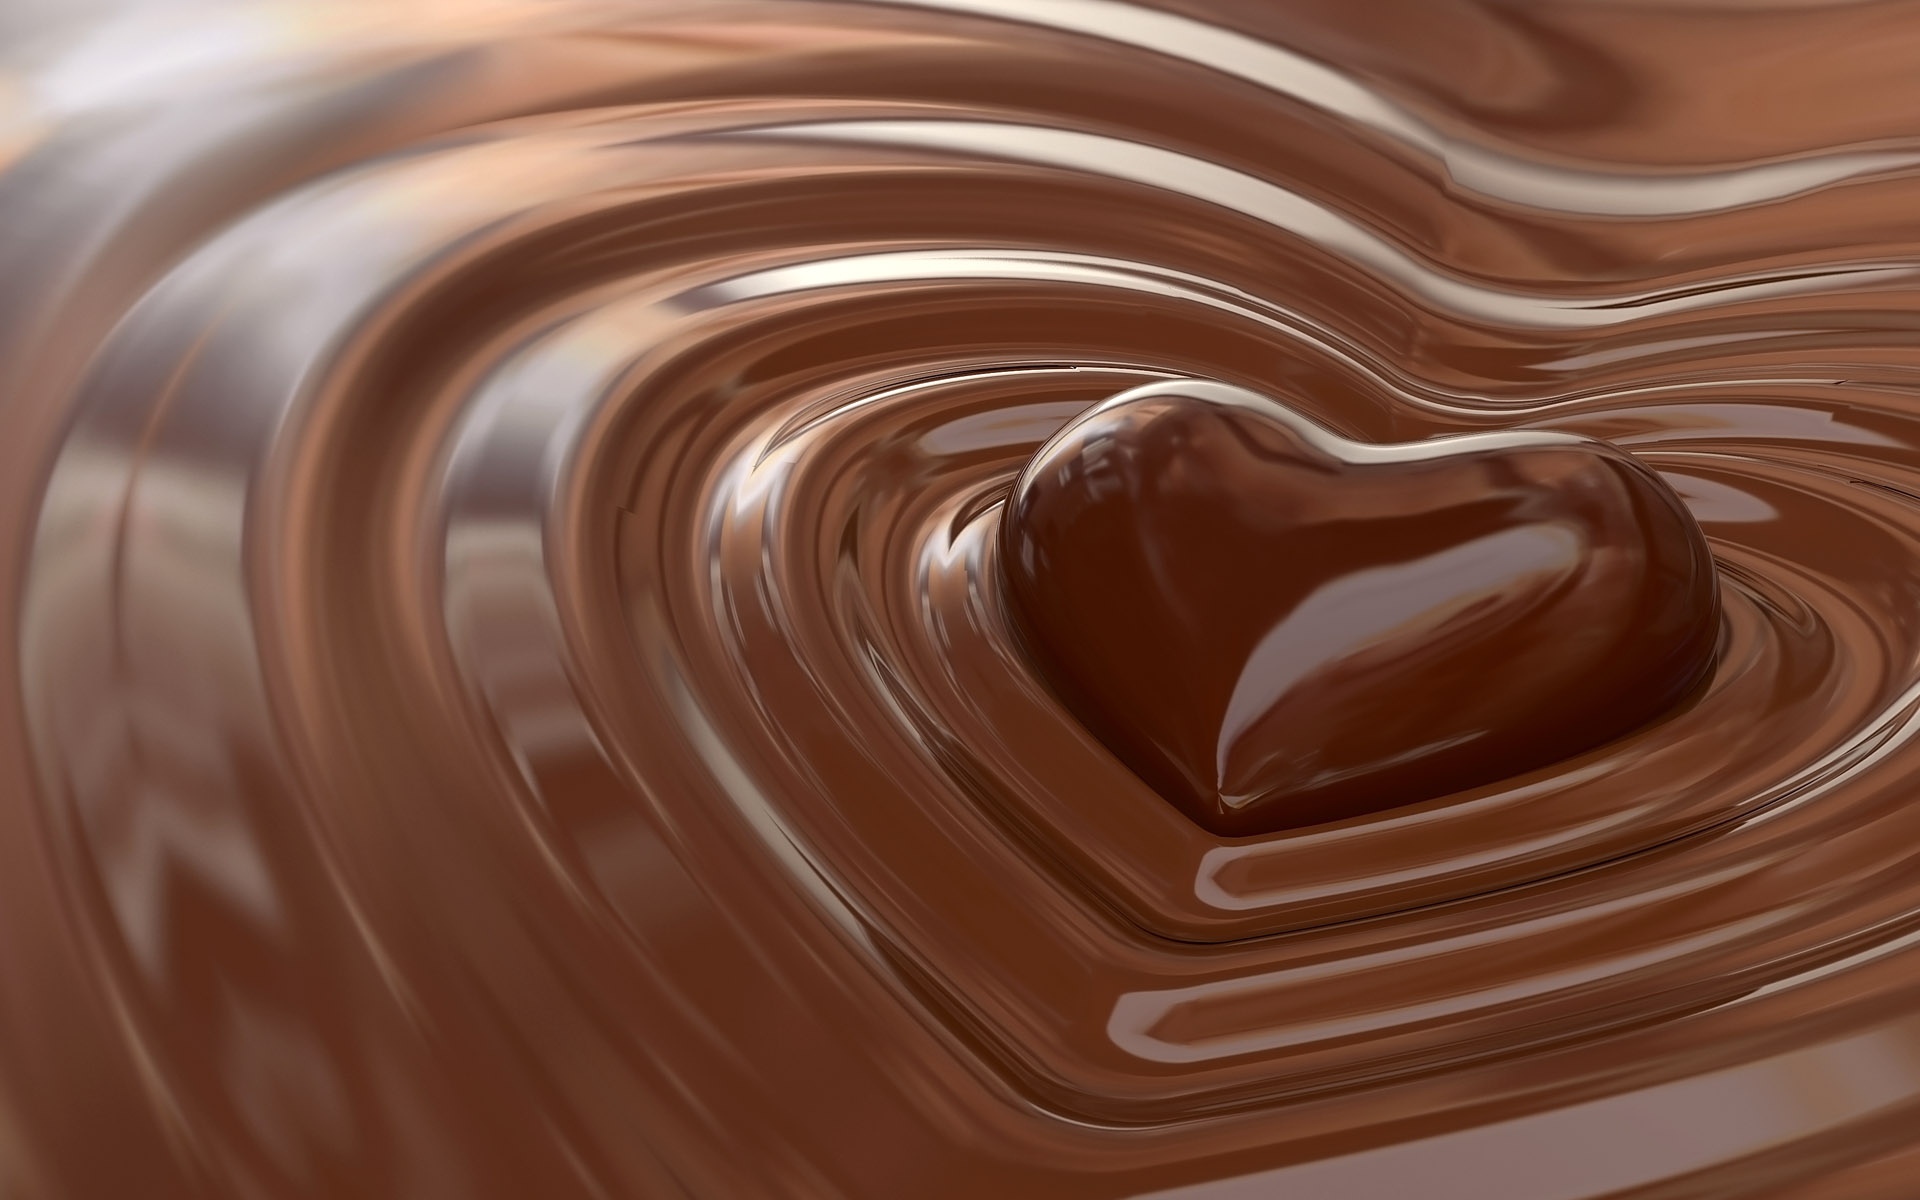 Calling All Chocolate Lovers